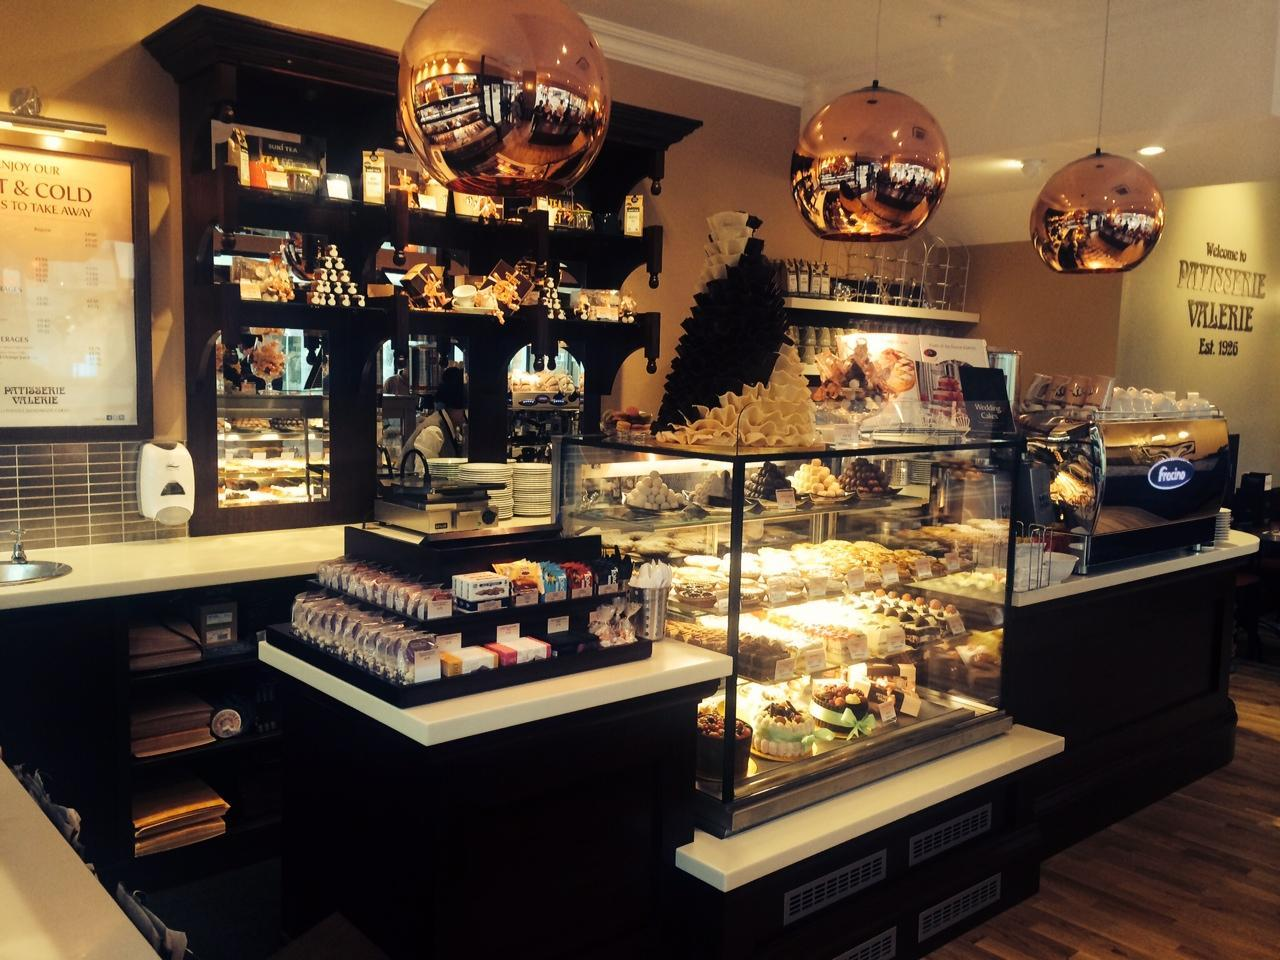 Patisserie Valerie - York Coppergate - York